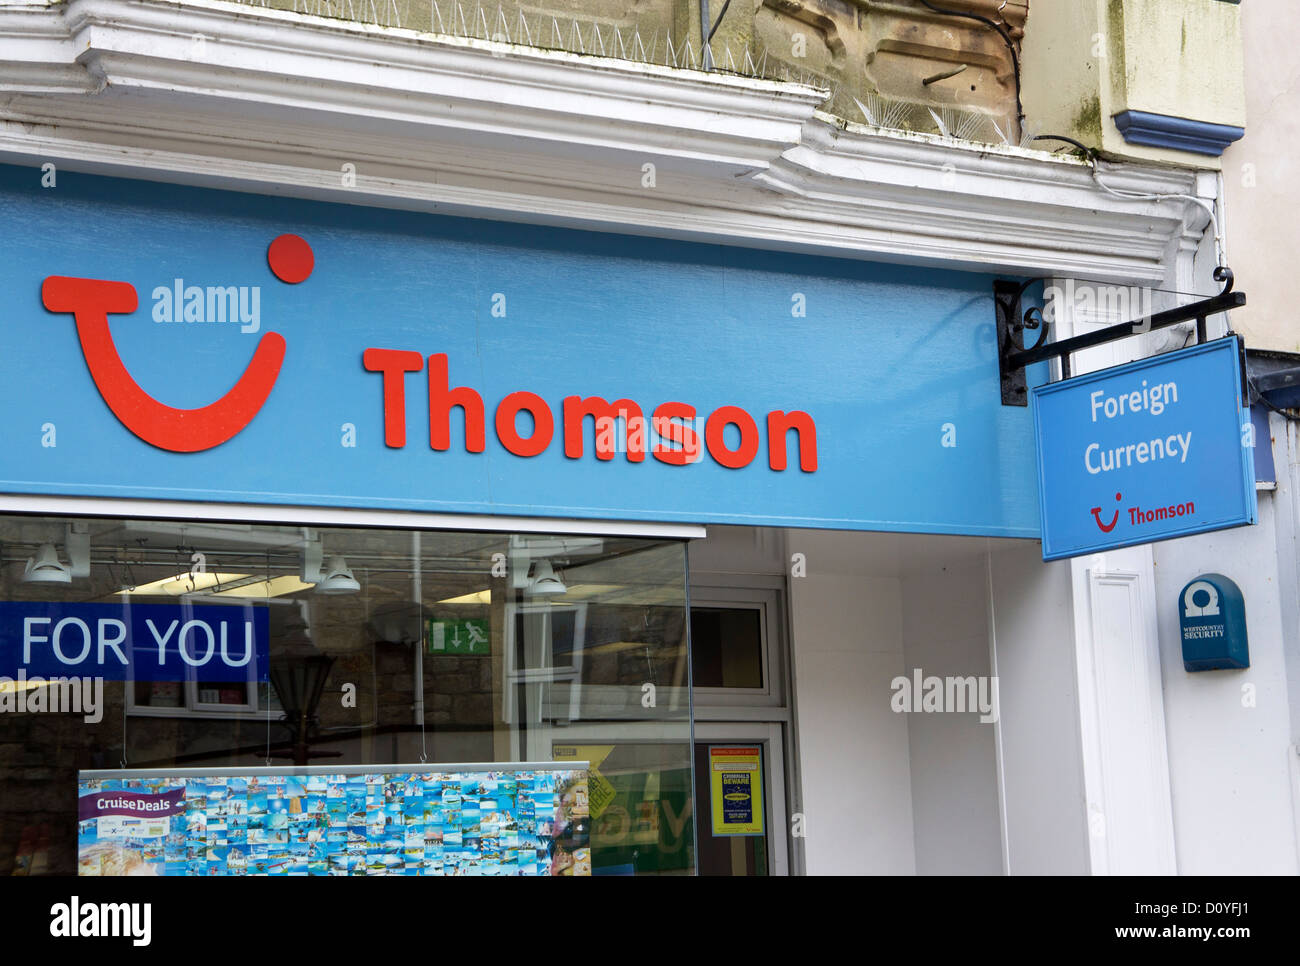 a thomson travel agency in a uk high street - Stock Image